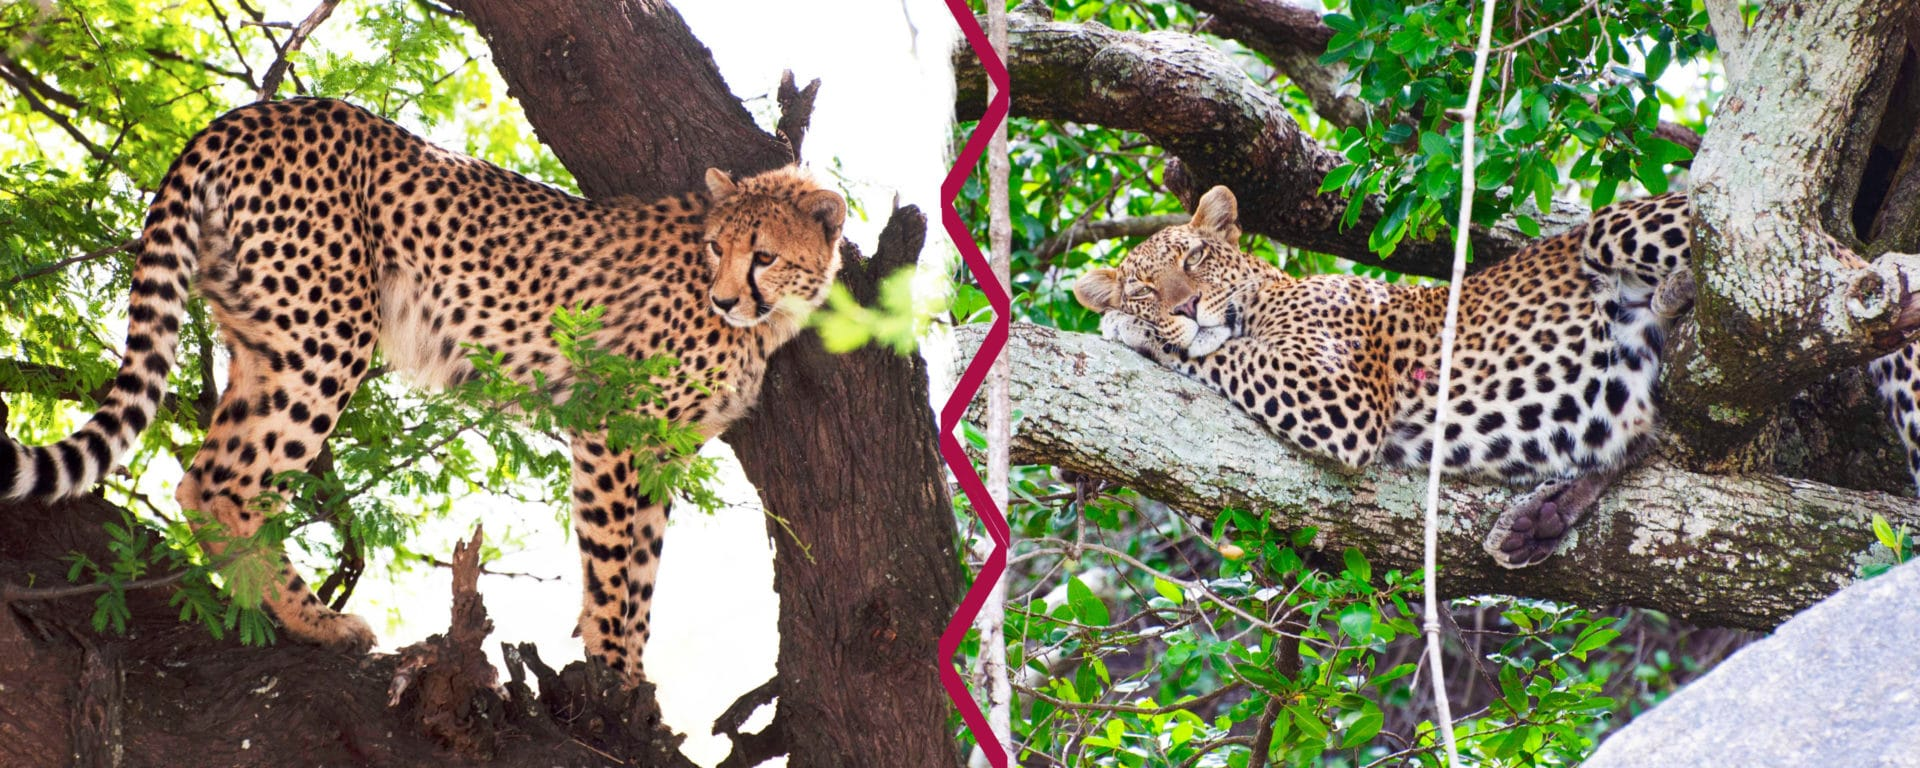 What's The Difference? Cheetah Vs Leopard | Safari Ventures